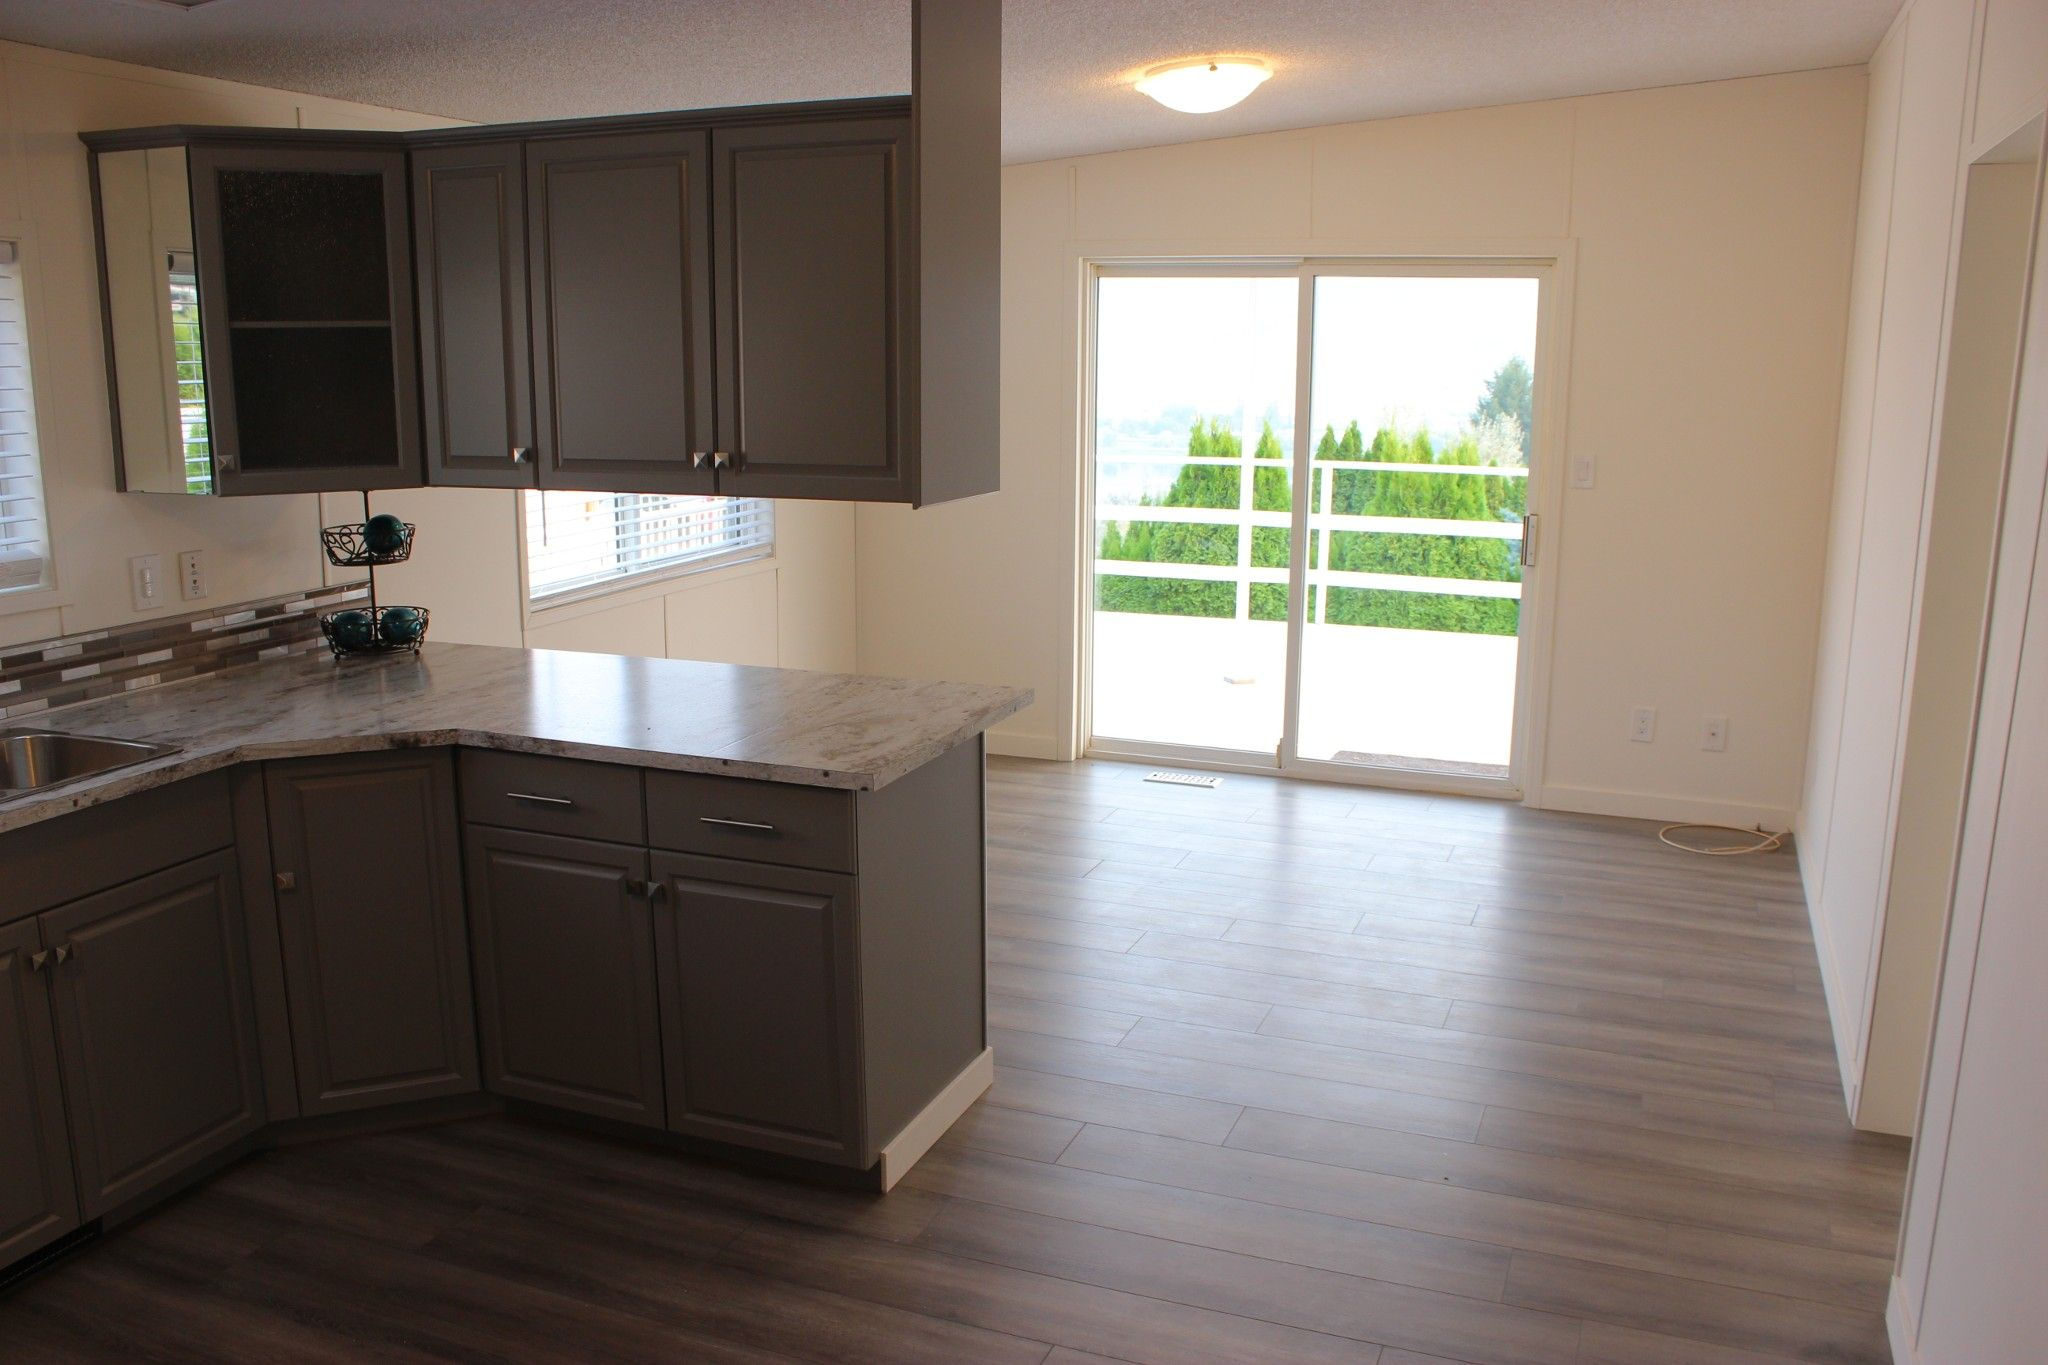 Photo 7: Photos: 22 3099 E Shuswap Road in Kamloops: South Thompson Valley Manufactured Home for sale : MLS®# 147827